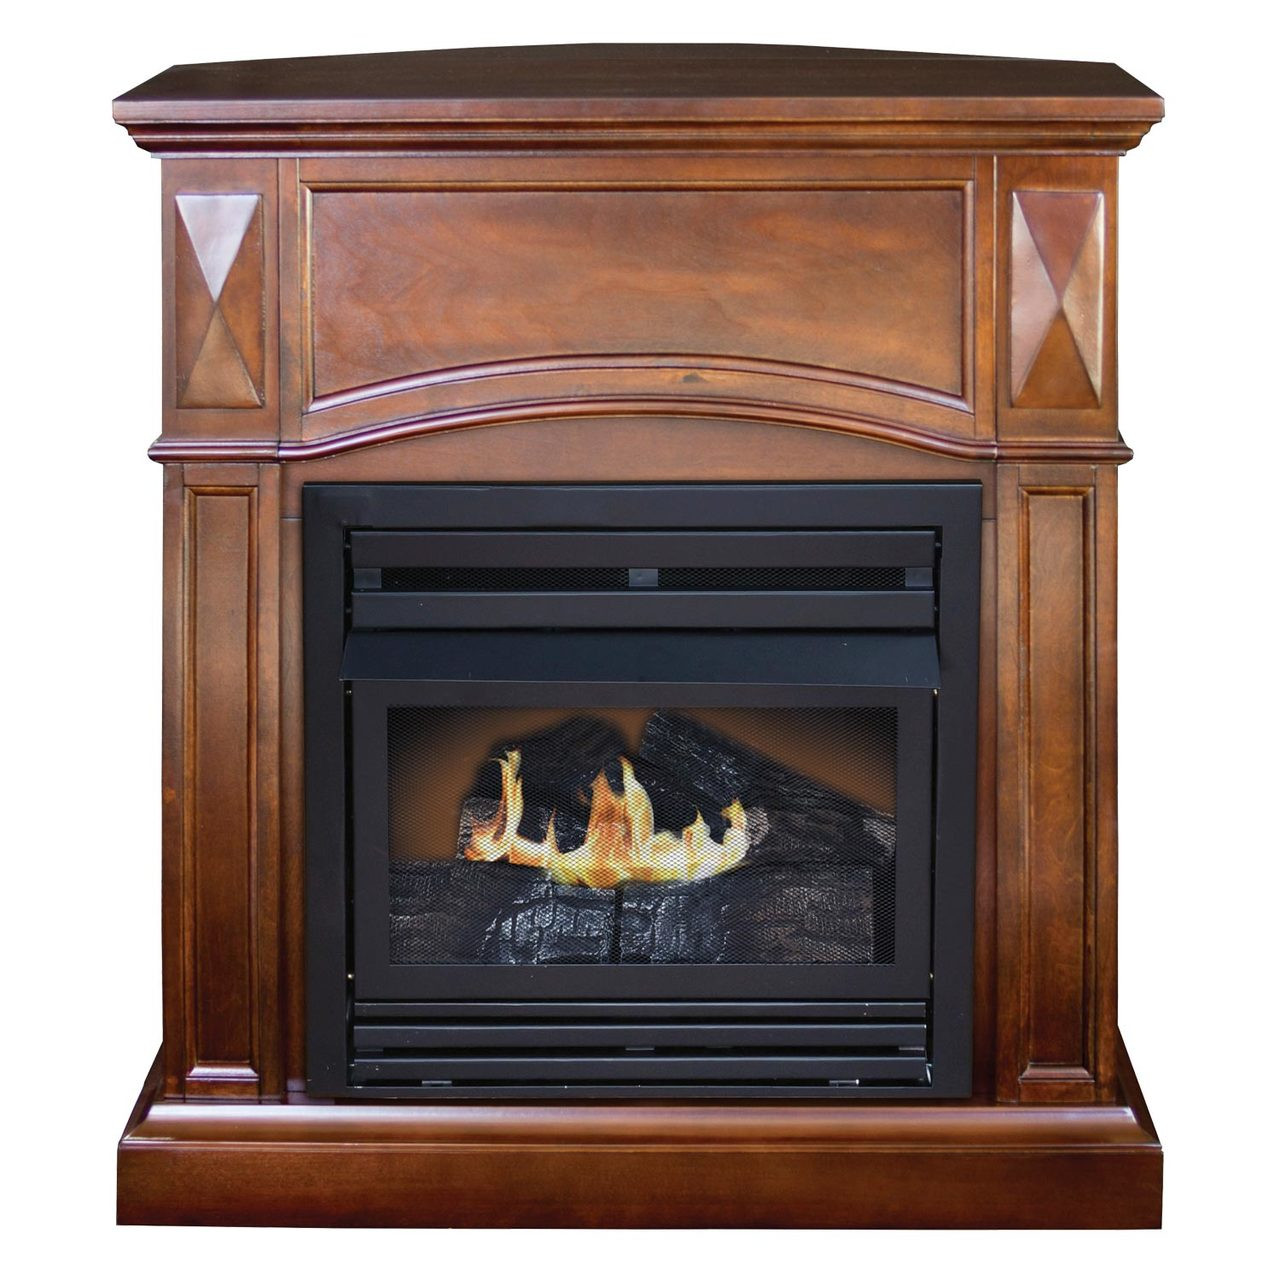 Propane Fireplace Installation Comfort Glow Gfd2043 The Belmont Propane Lp Or Natural Gas Ng Vent Free Fireplace 20 000 Btus